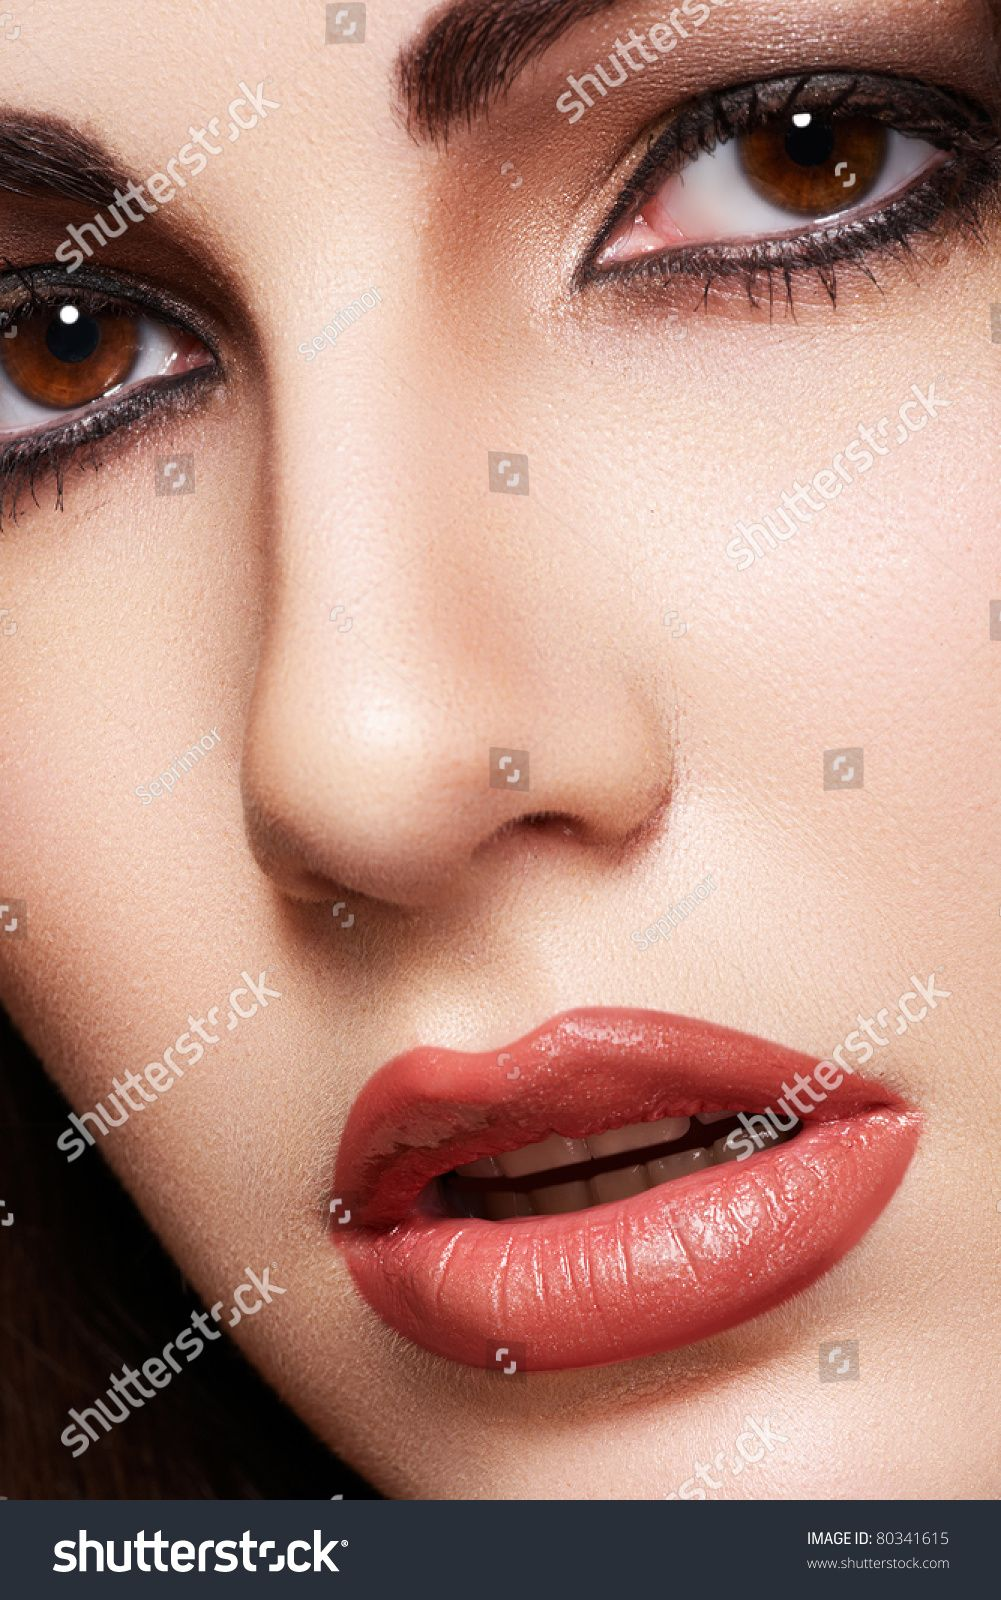 Close-up portrait of sensual arabic woman model. Beautiful clean skin, saturated makeup, bright eye make-up and dark eyeliner. Oriental style #Sponsored , #Sponsored, #model#woman#clean#Beautiful